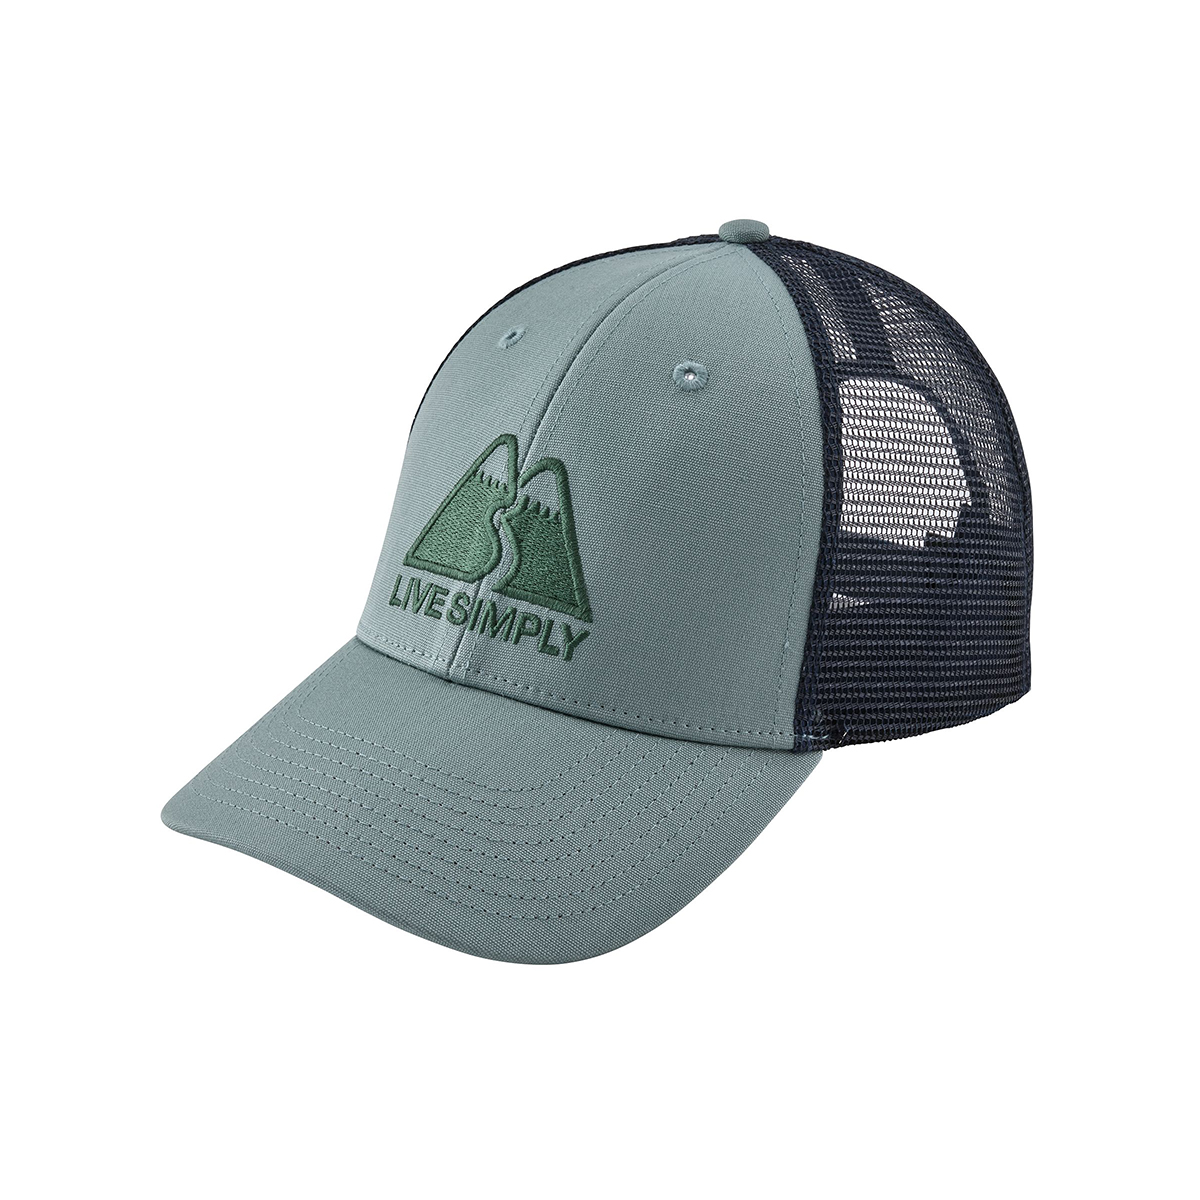 2dfff434e Live Simply Winding LoPro Trucker Hat